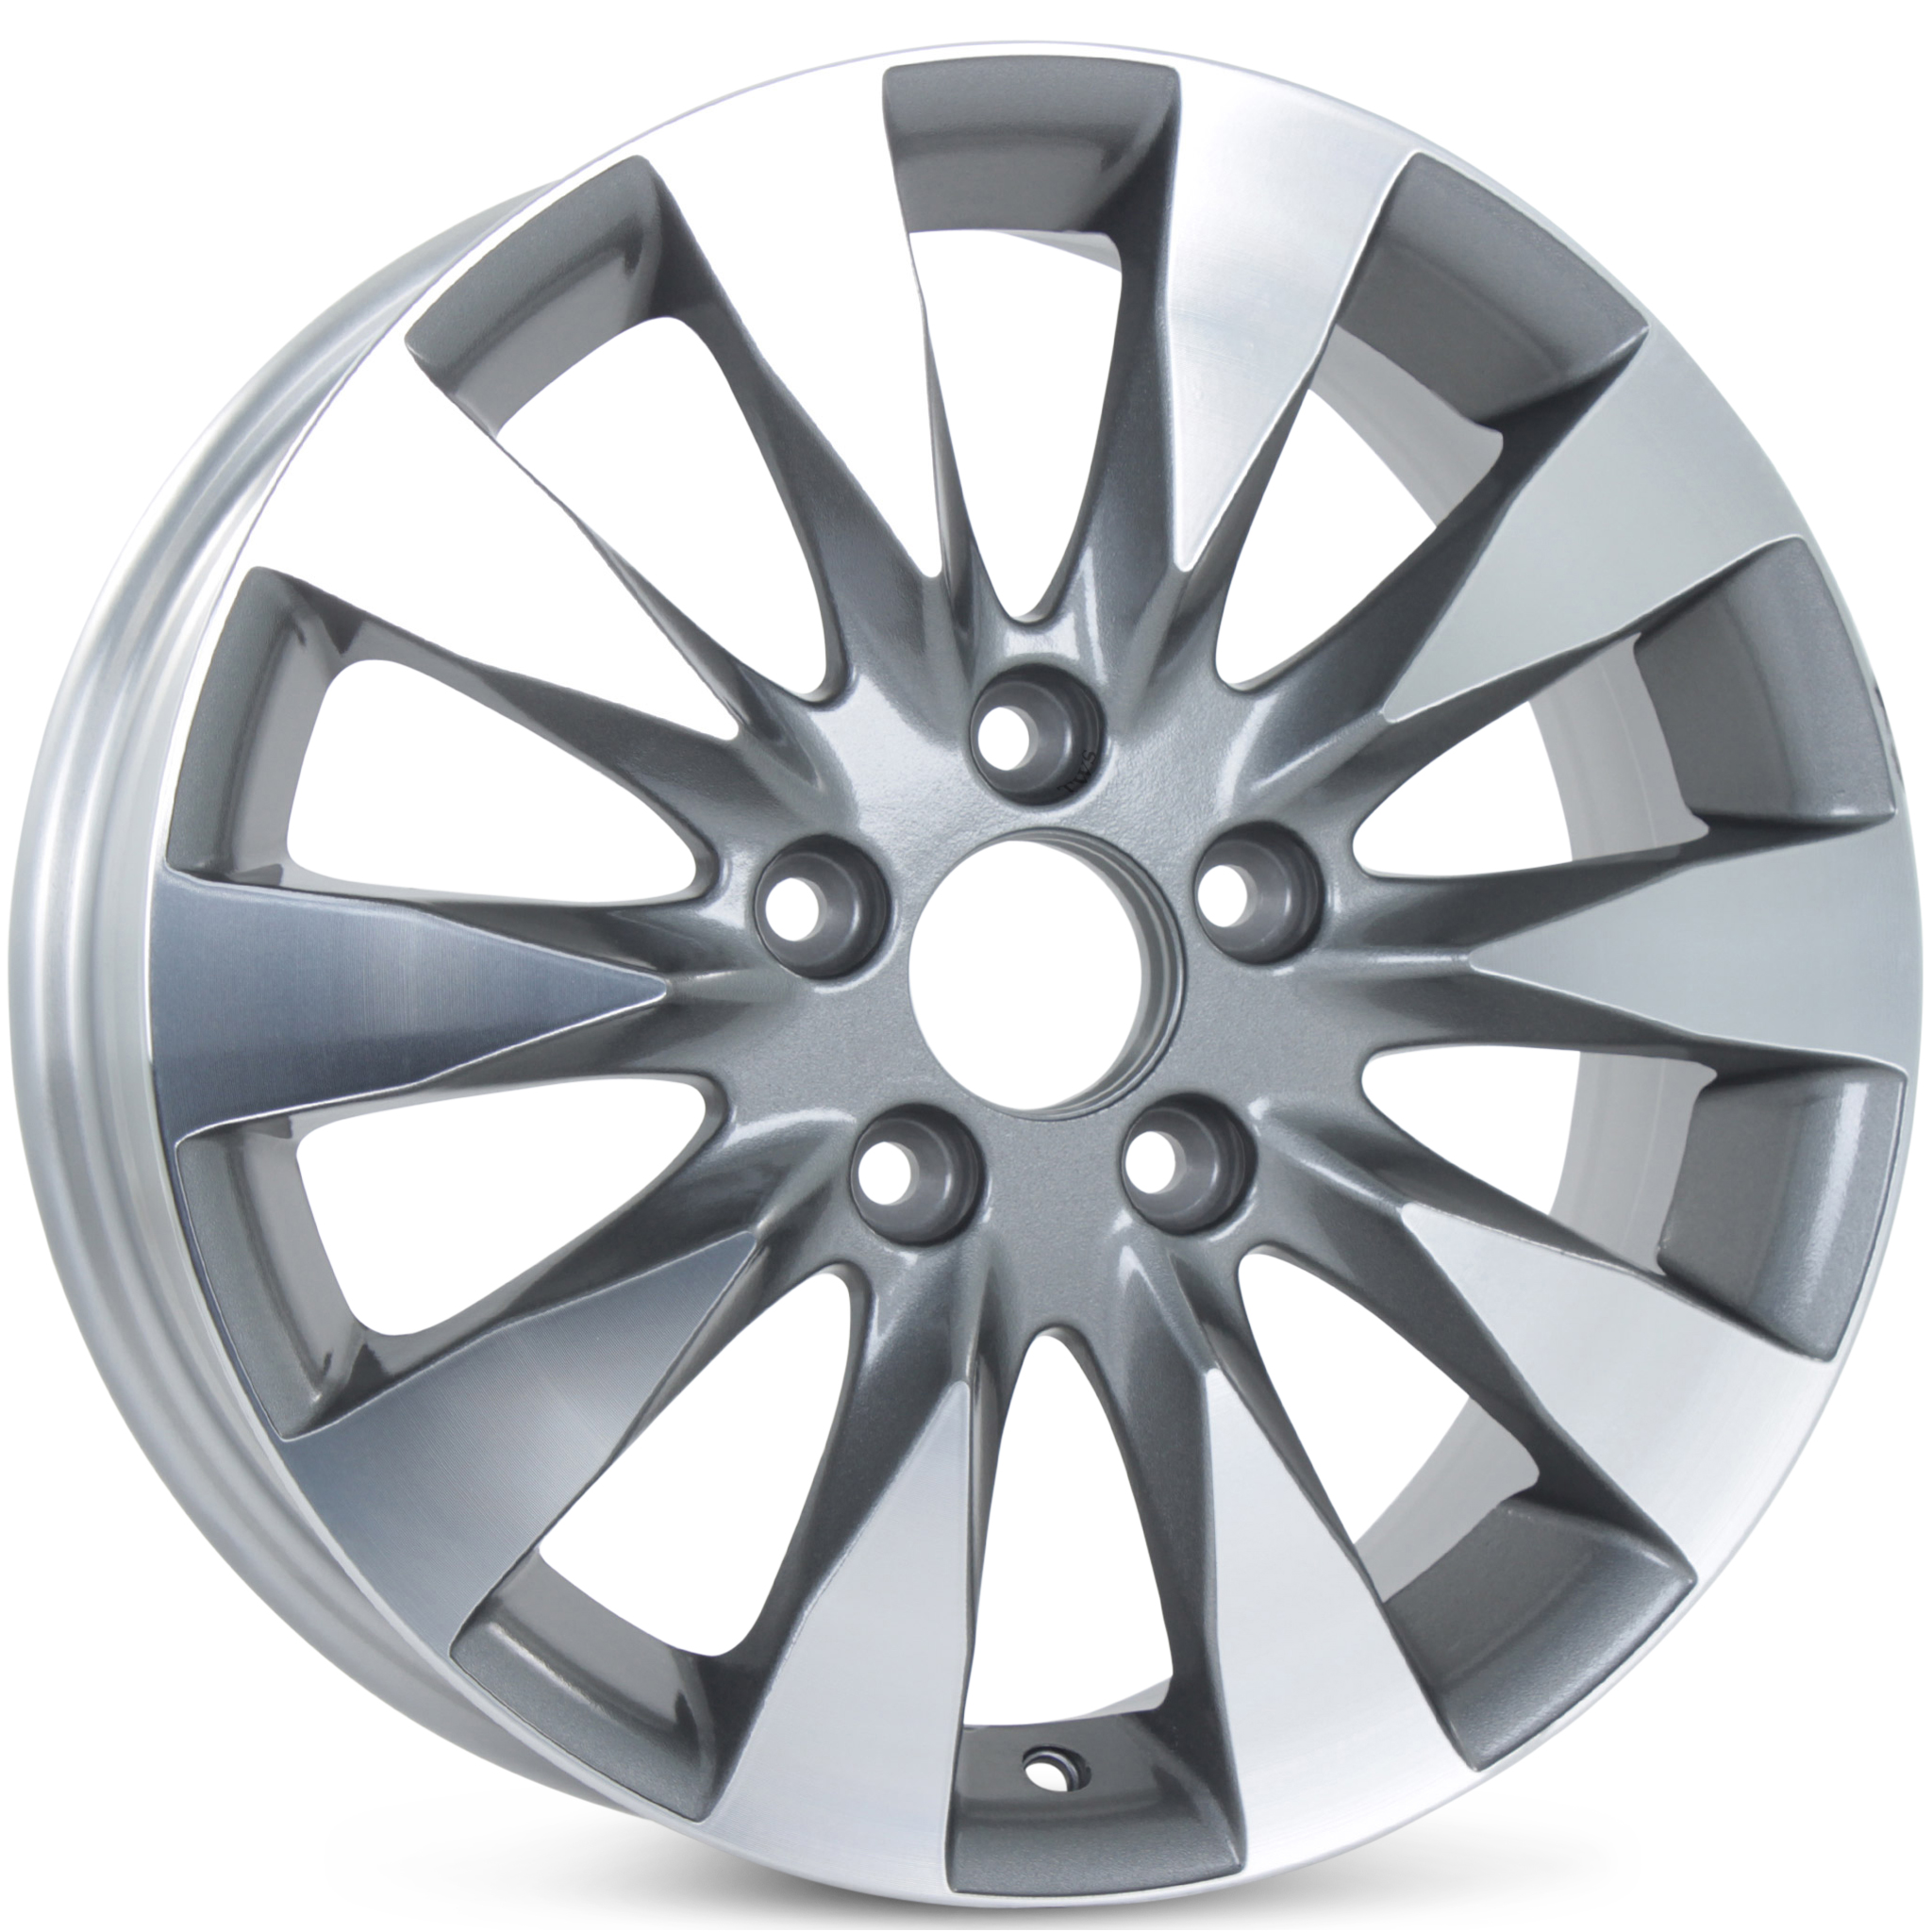 Brand New 16 Quot X 6 5 Quot Replacement Wheel For Honda Civic